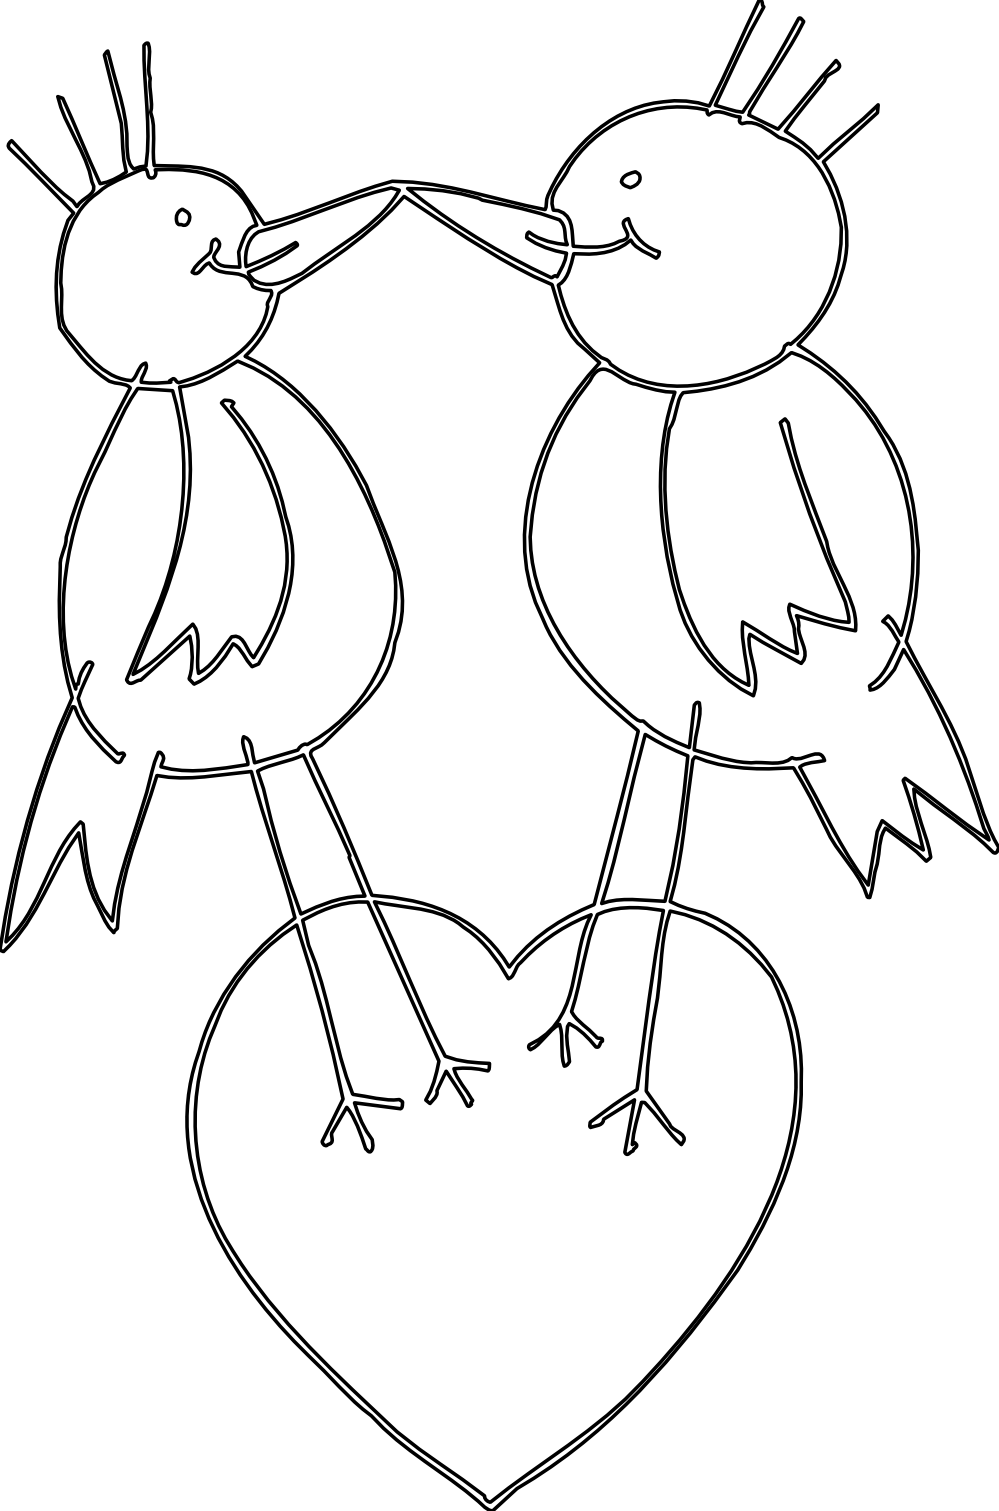 Library book clipart black and white picture free download Love Birds Clipart Black And White   Clipart Panda - Free Clipart Images picture free download